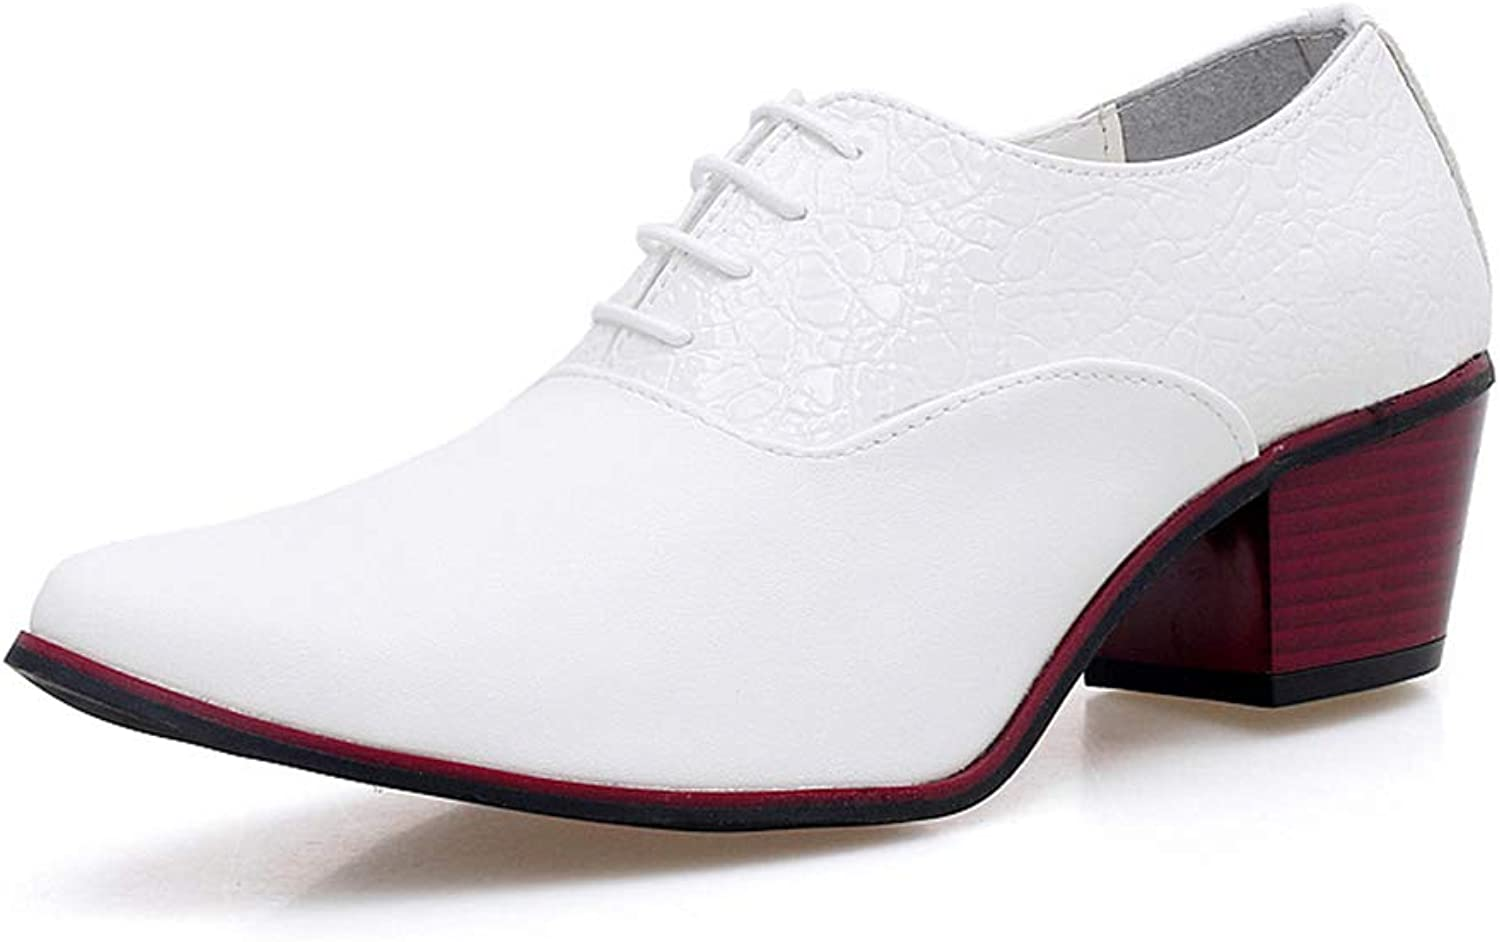 Men'S shoes, Barber Men Height Increase Casual shoes England Pointed High Heels Hair Stylist Nightclub shoes,b,43